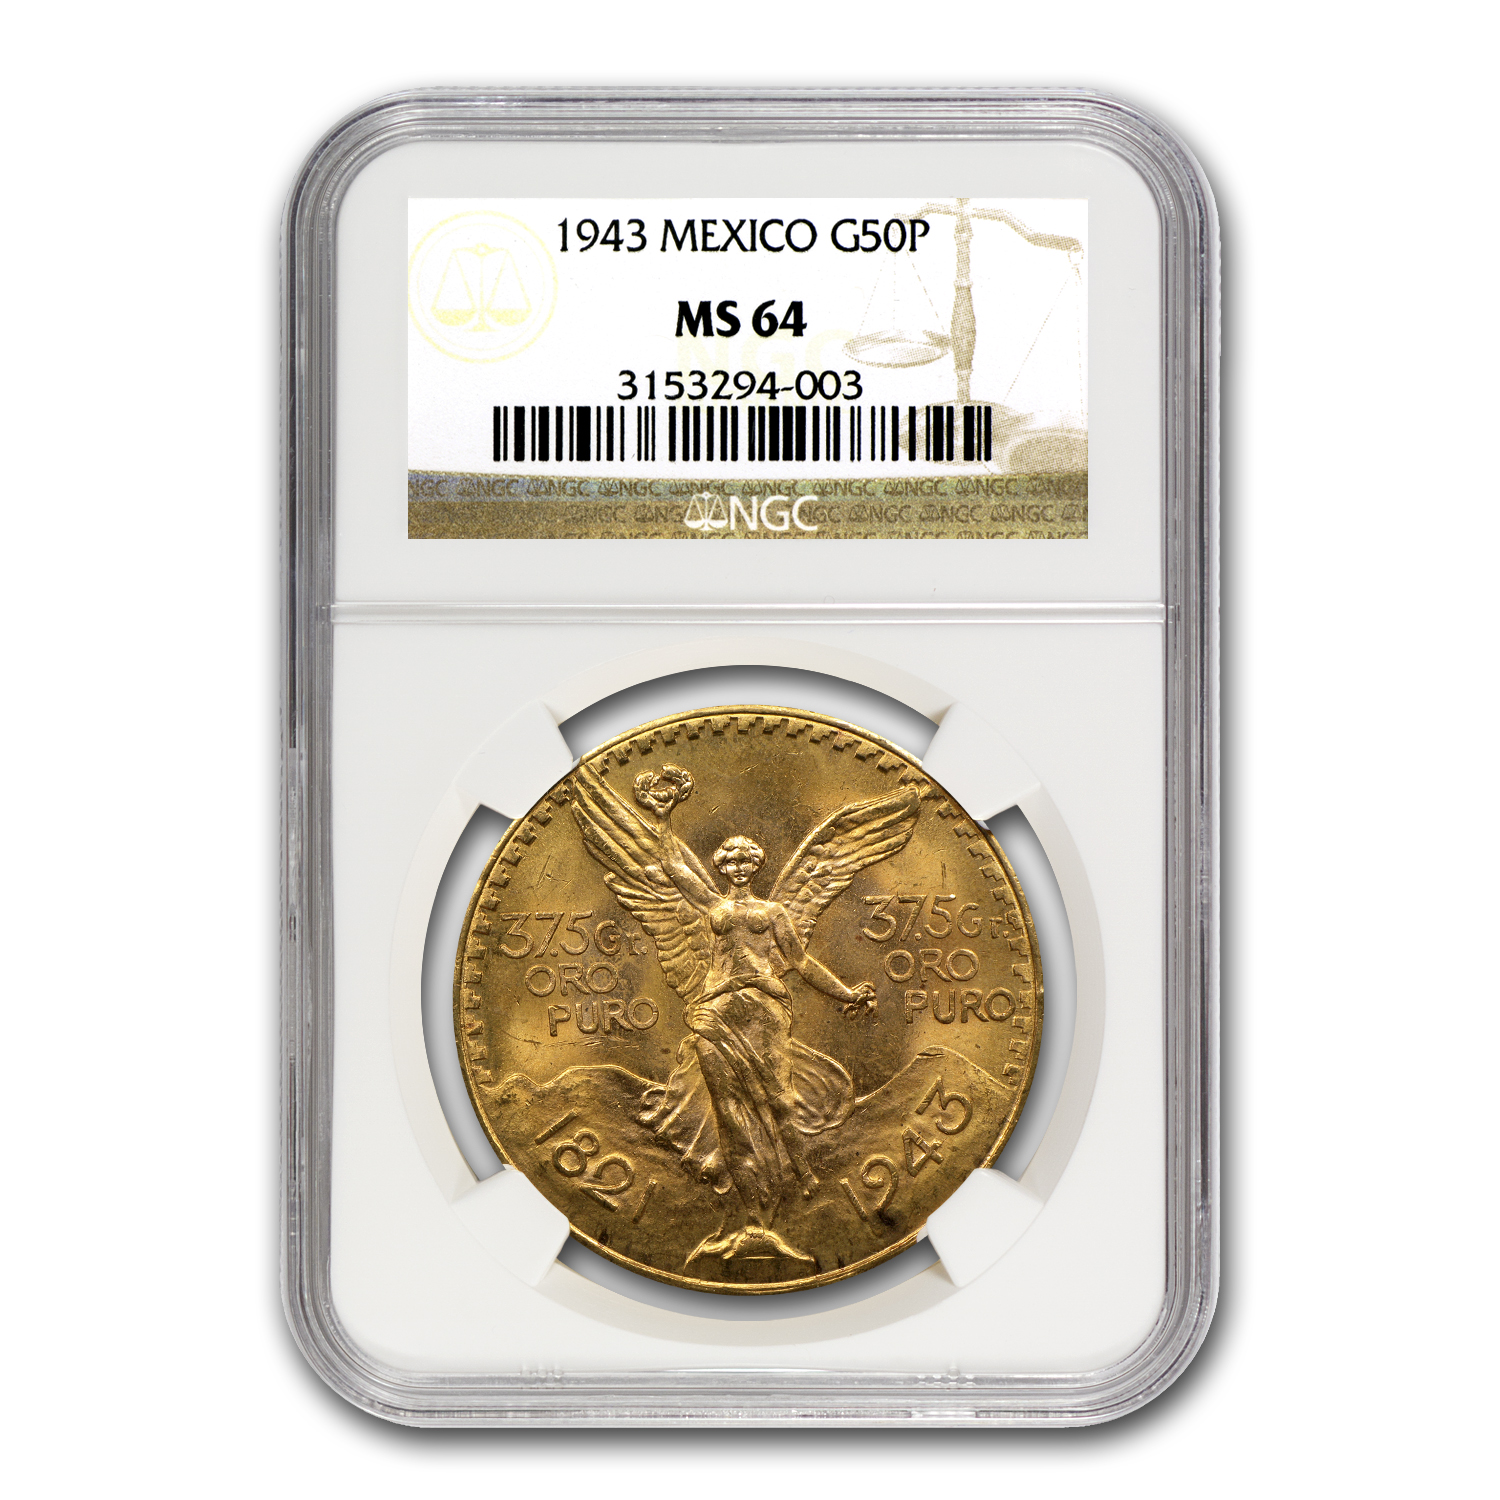 1943 Mexico Gold 50 Pesos MS-64 NGC